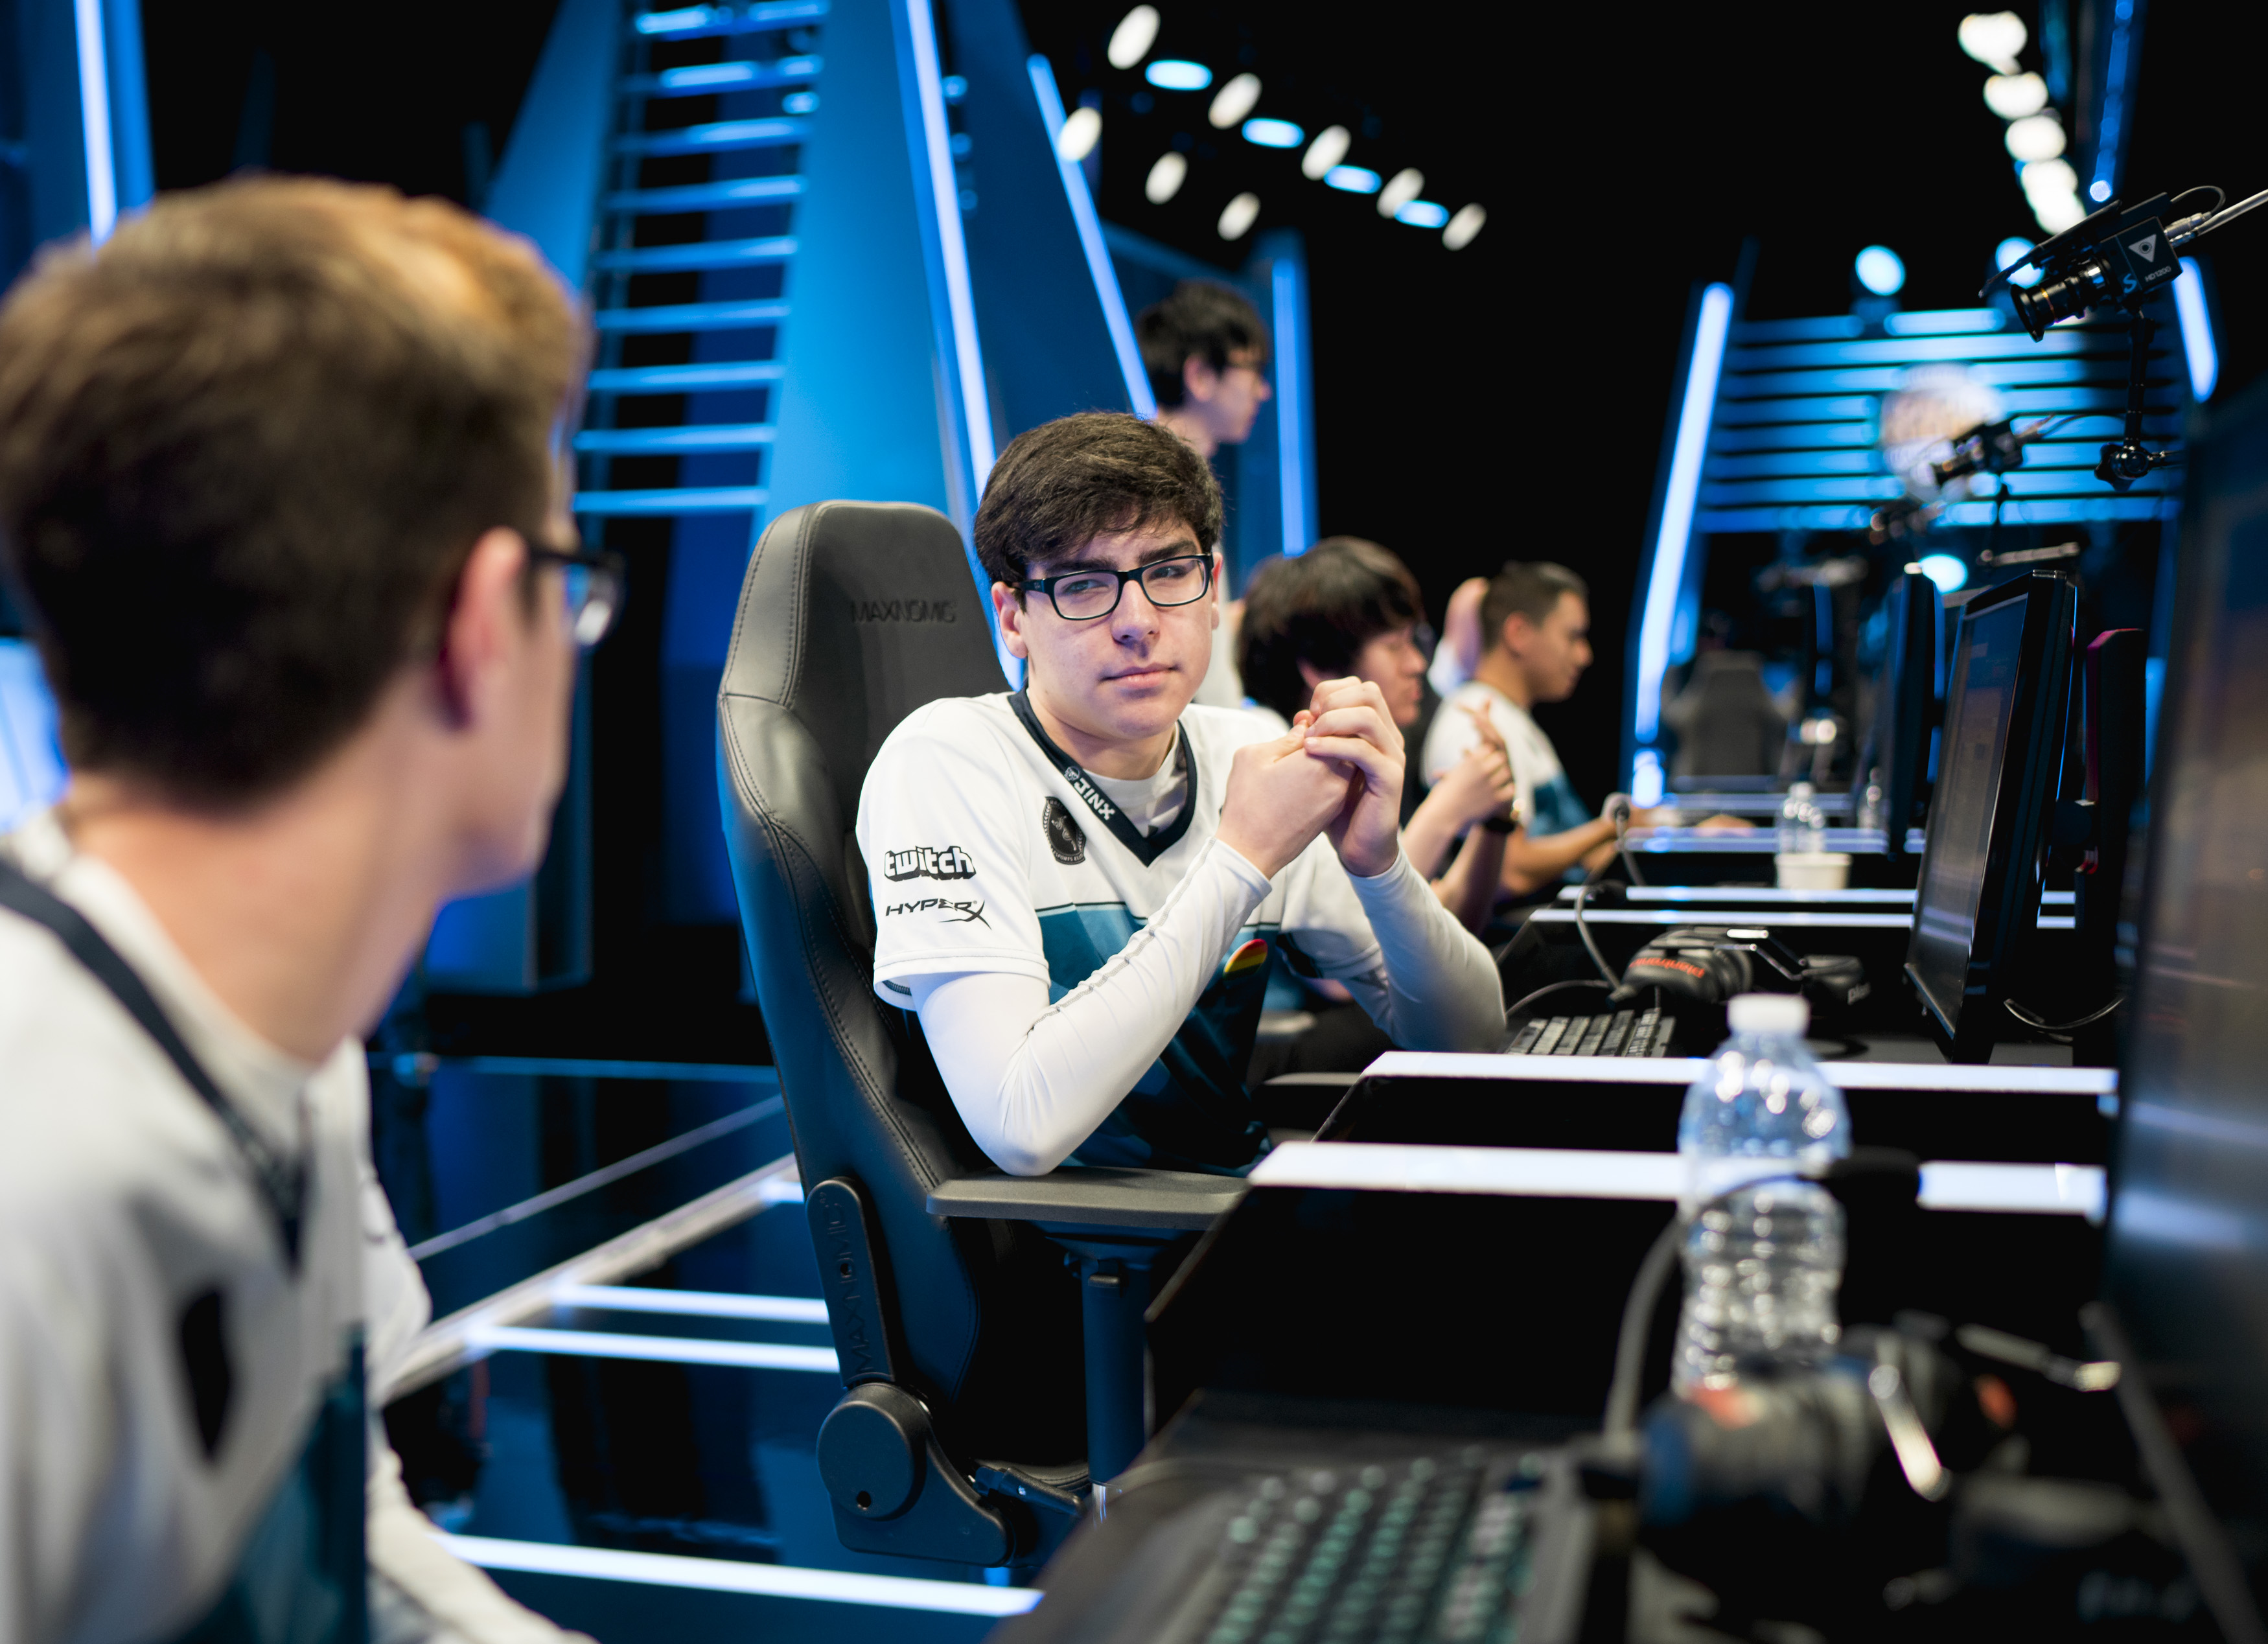 Dardoch on stage during the NA LCS.